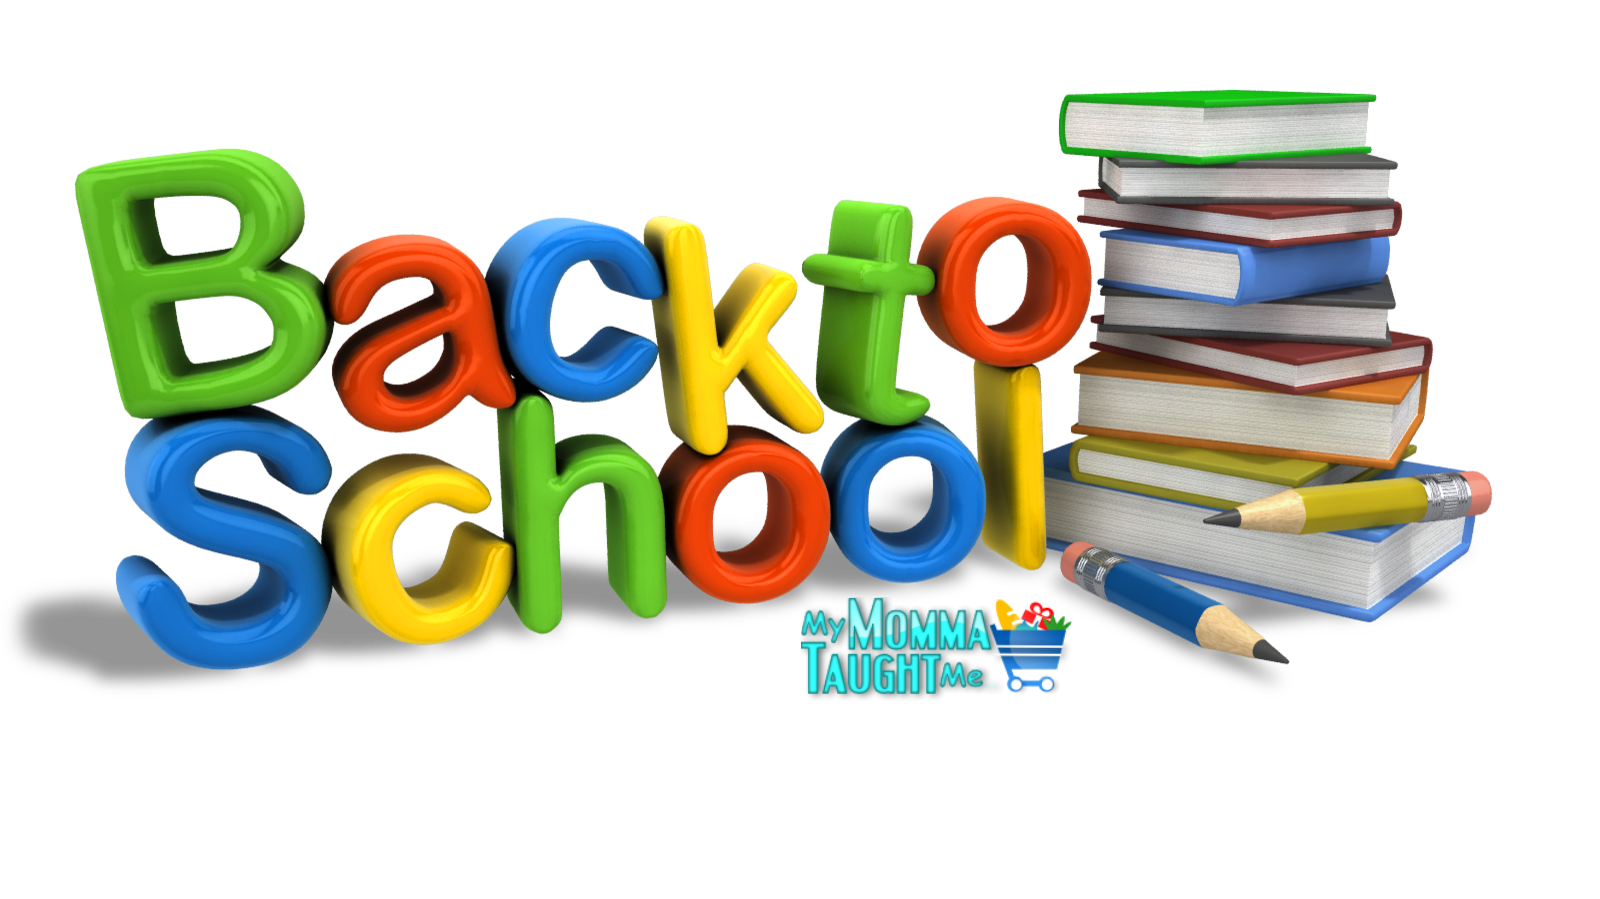 Back to school supplies clipart black and white stock Back to School Supplies Round Up for the Week of 7-20-2014 - My ... black and white stock